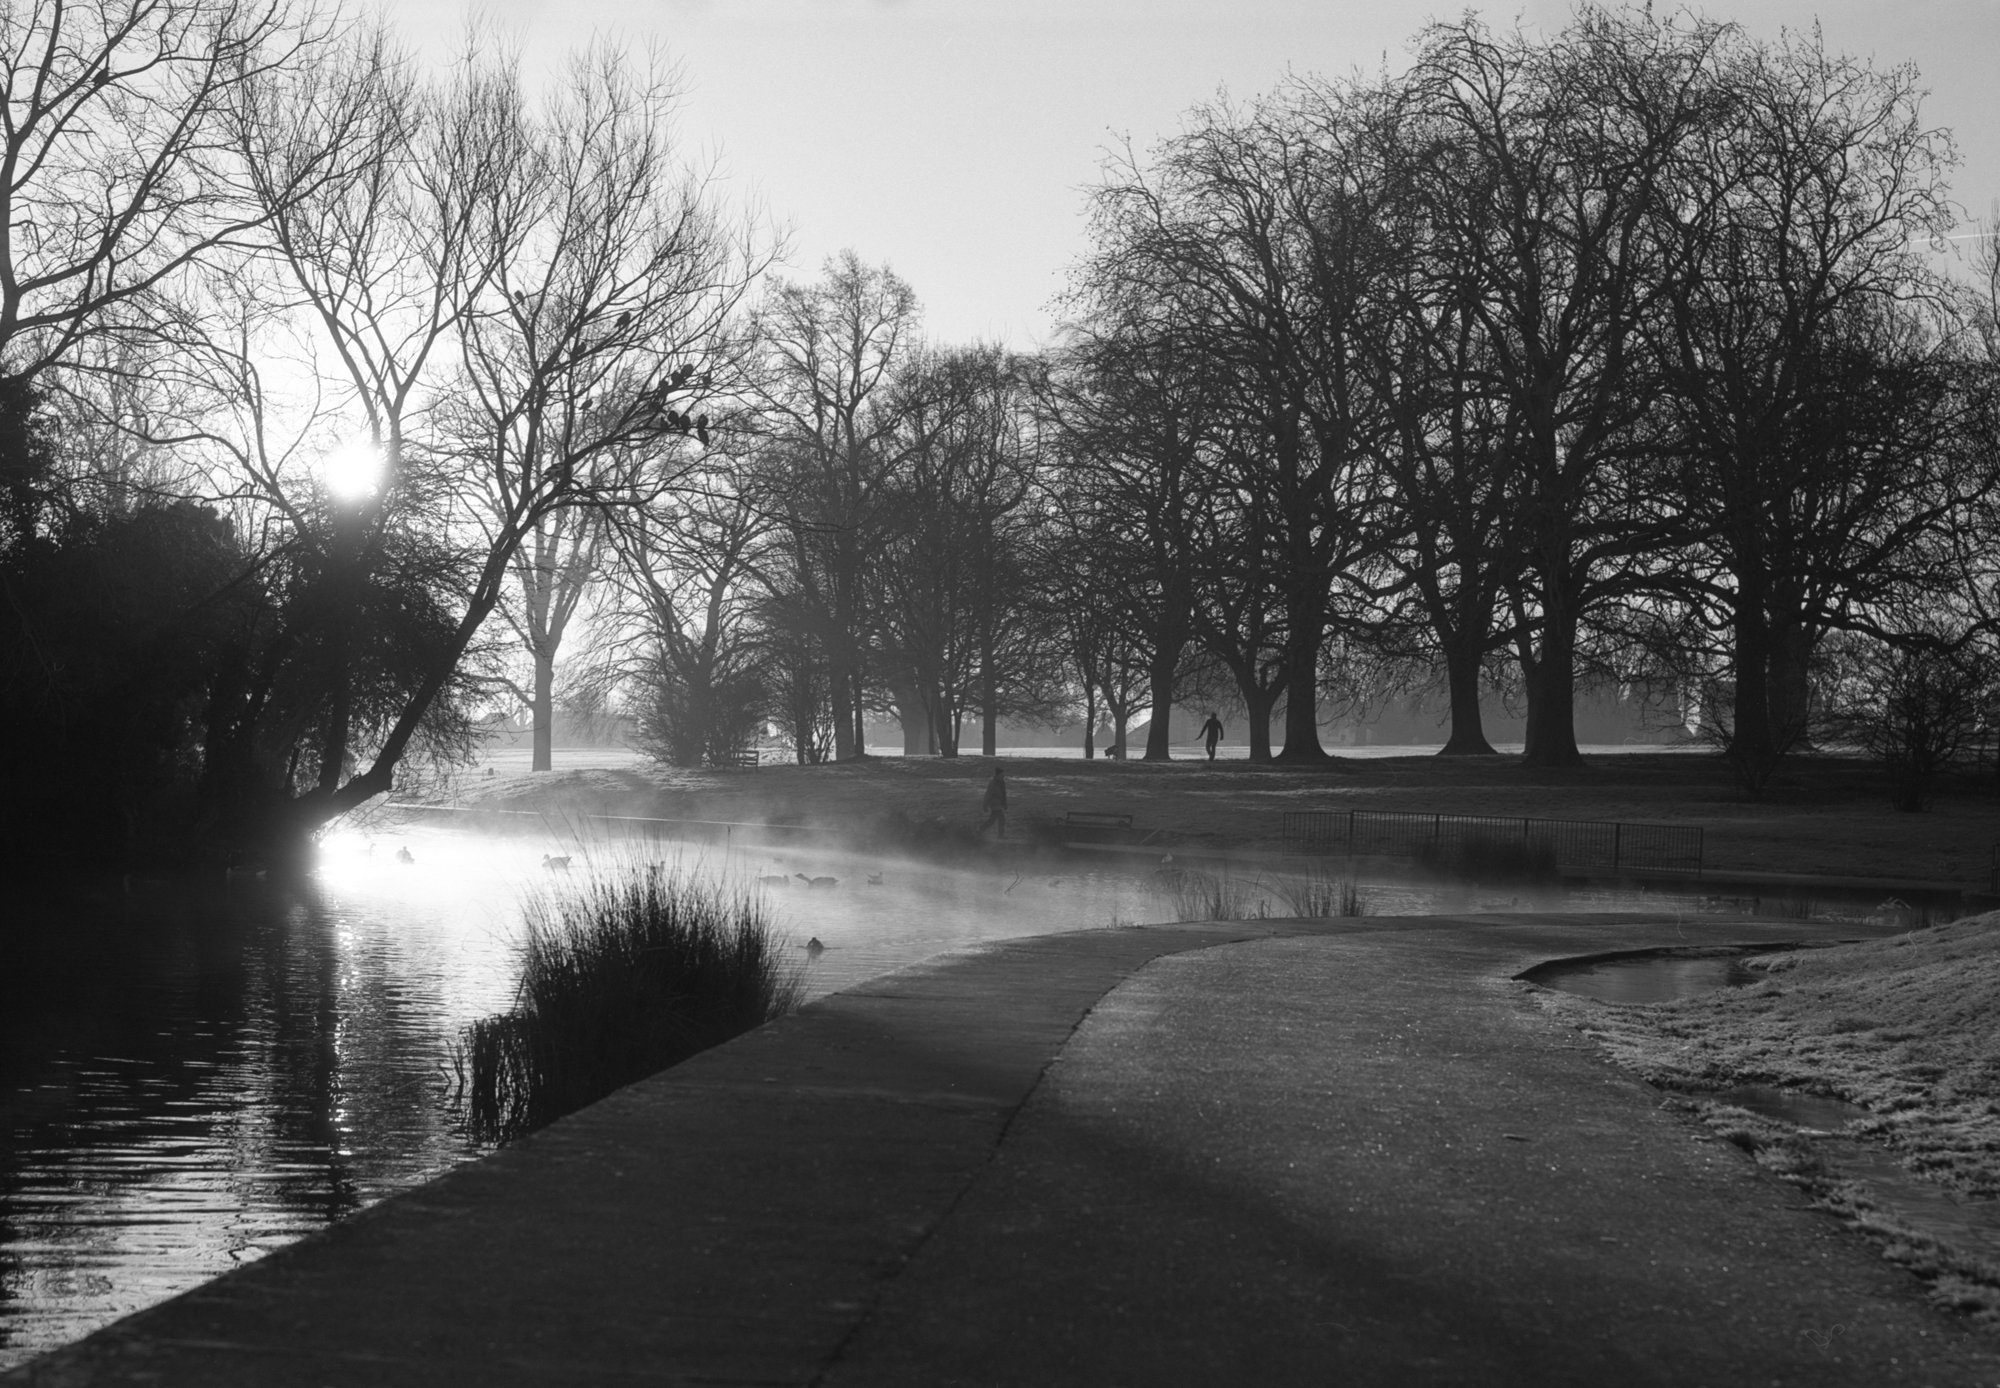 @atlantean526 · 3h Replying to @ILFORDPhoto @SkearsPhoto and 6 others Smoke on the water. A cold, frosty Sunday morning in Abington Park, Northampton. 19.1.2020 @SkearsPhoto 6x7 rangefinder/ 100mm f3.5 Mamiya Press lens. 1/60th sec/ f11 @ILFORDPhoto Ortho 80 plus Dev. ID-11 #ilfordphoto #fridayfavourites #shotin2020